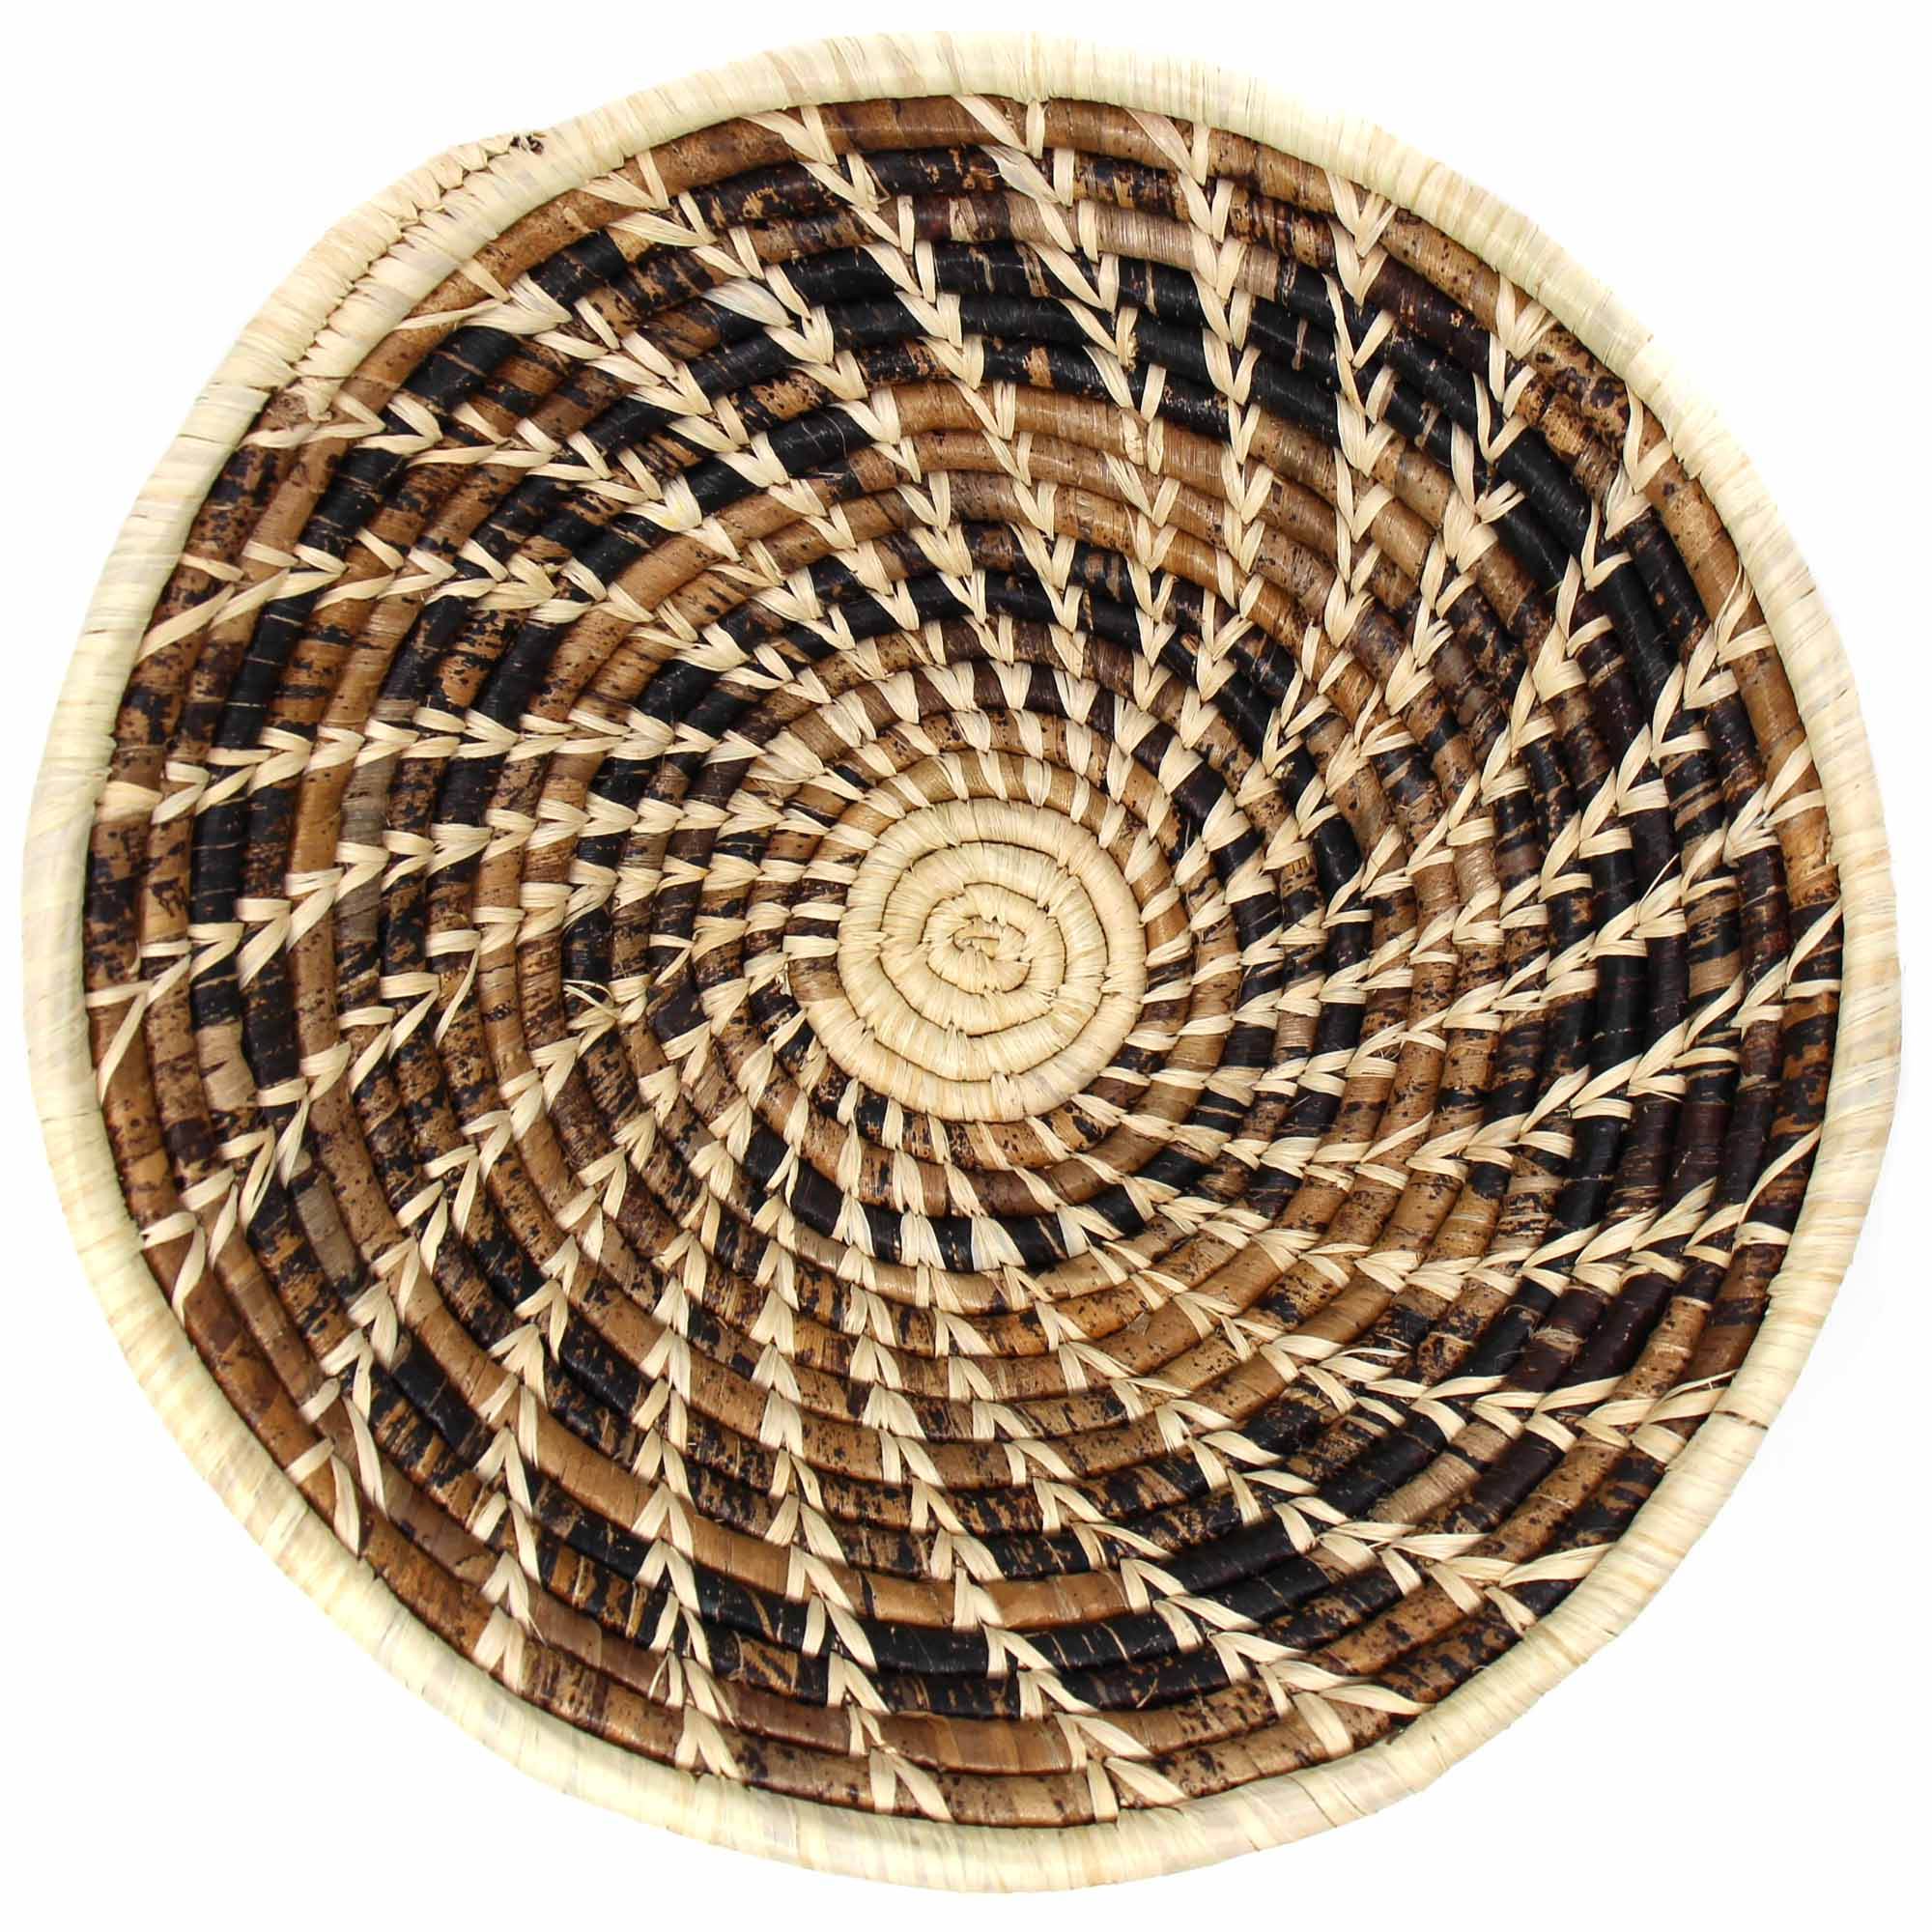 Woven Sisal Basket, Wheat Stalk Spirals In Natural